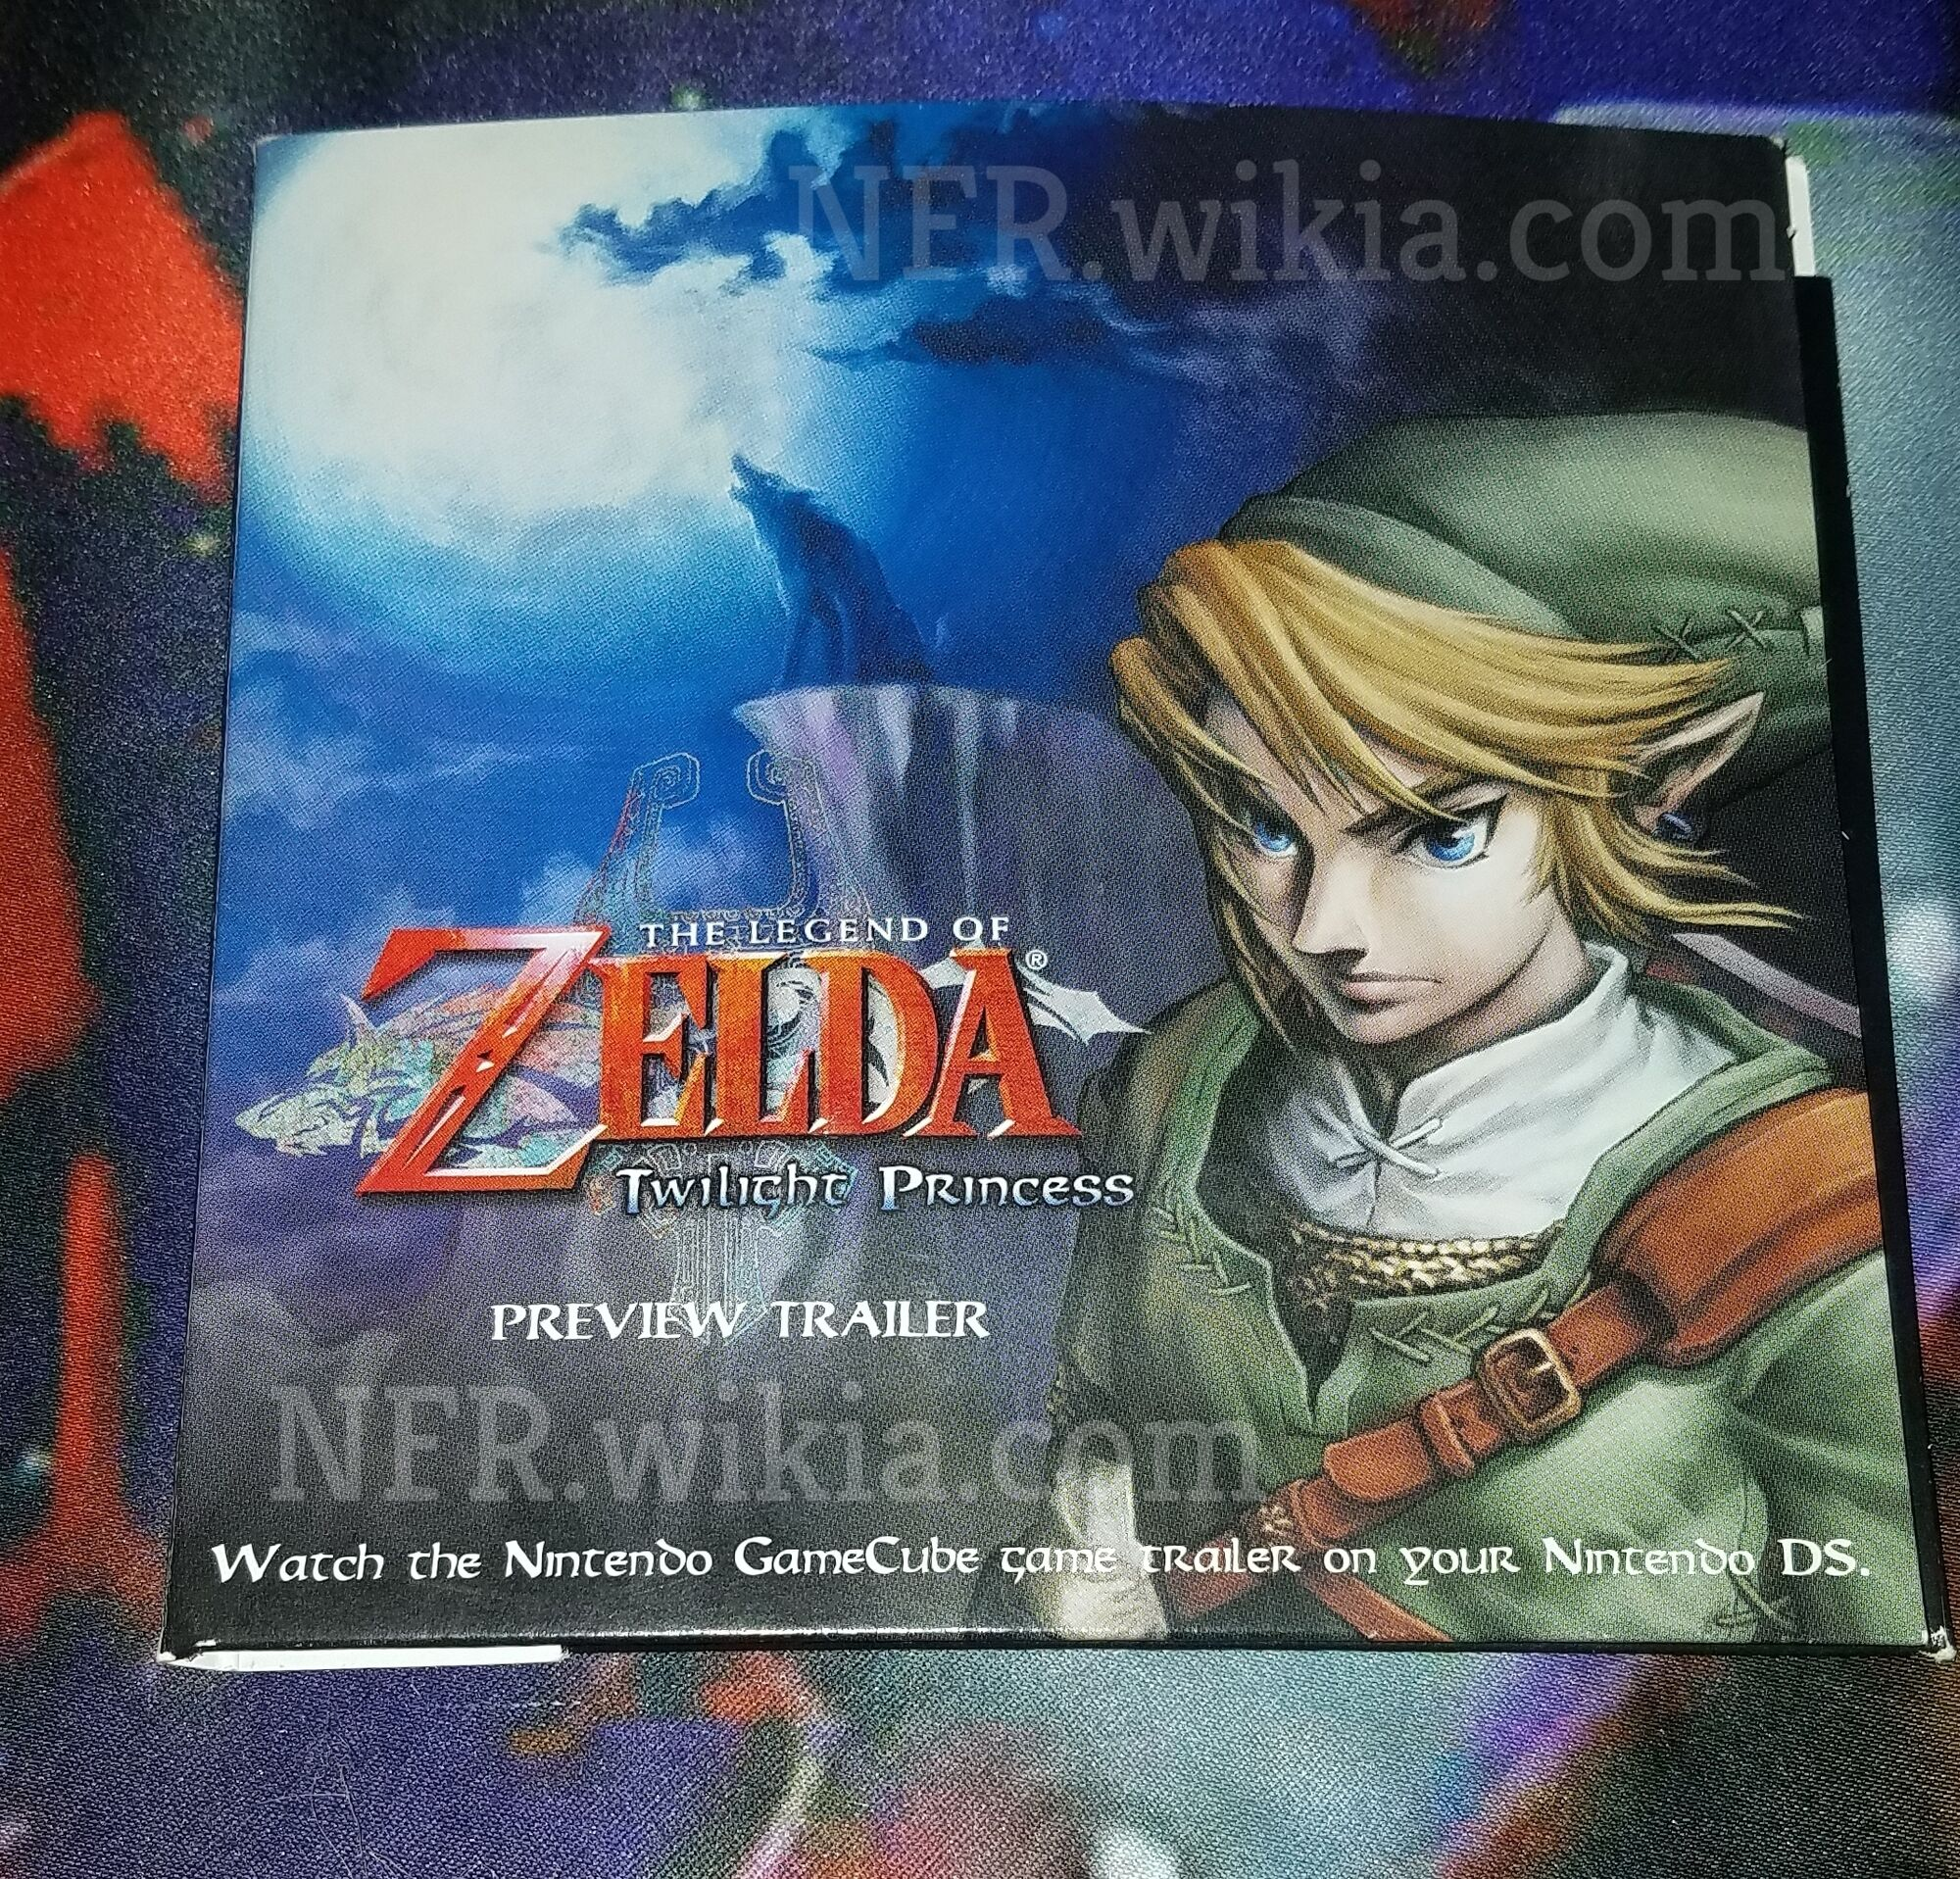 The Legend of Zelda Twilight Princess Preview Trailer | Nfr Wiki